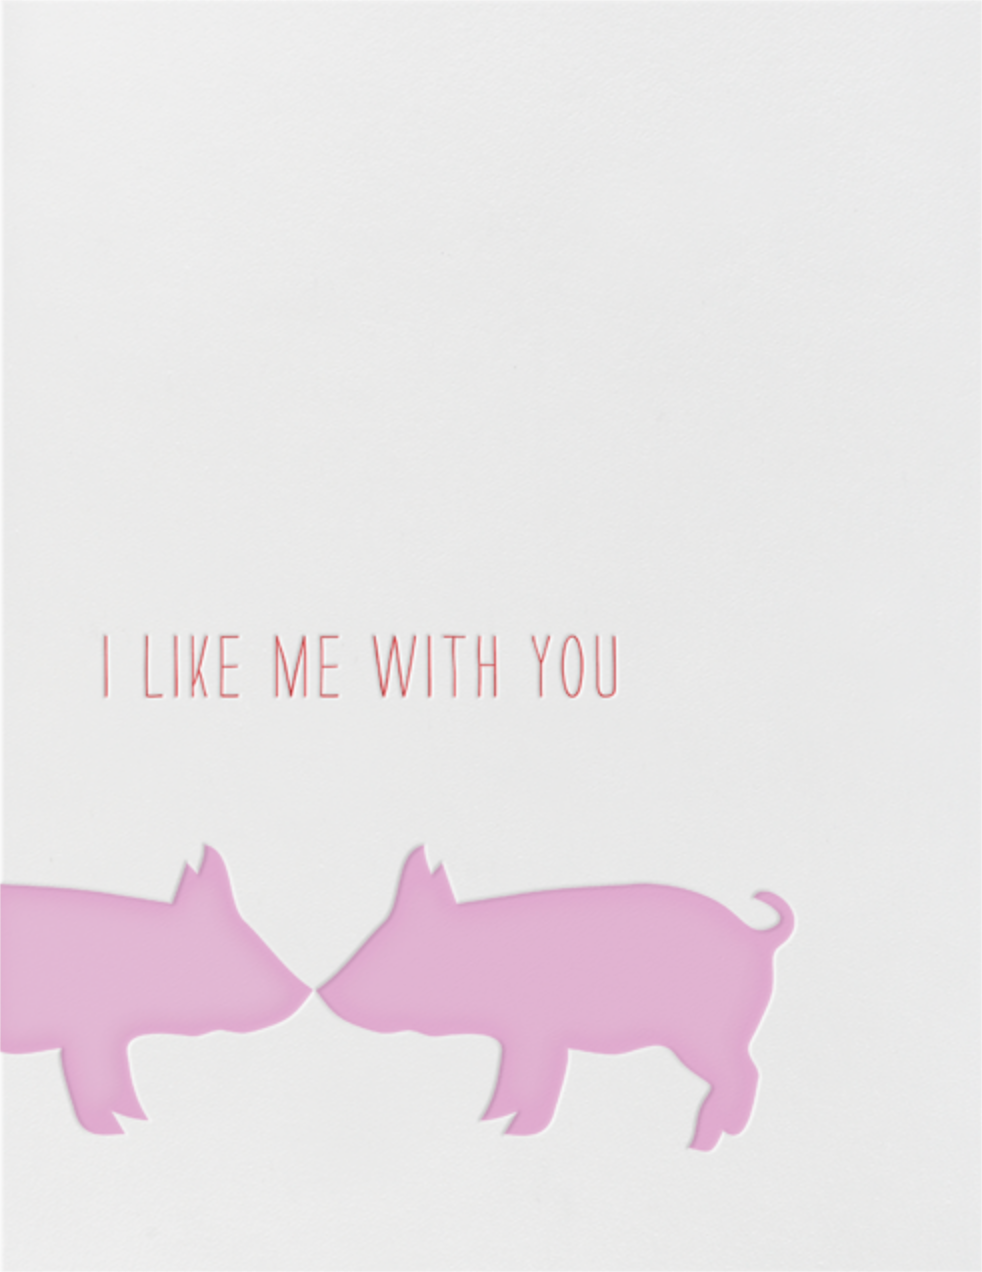 Kissing Pigs - Linda and Harriett - Anniversary cards